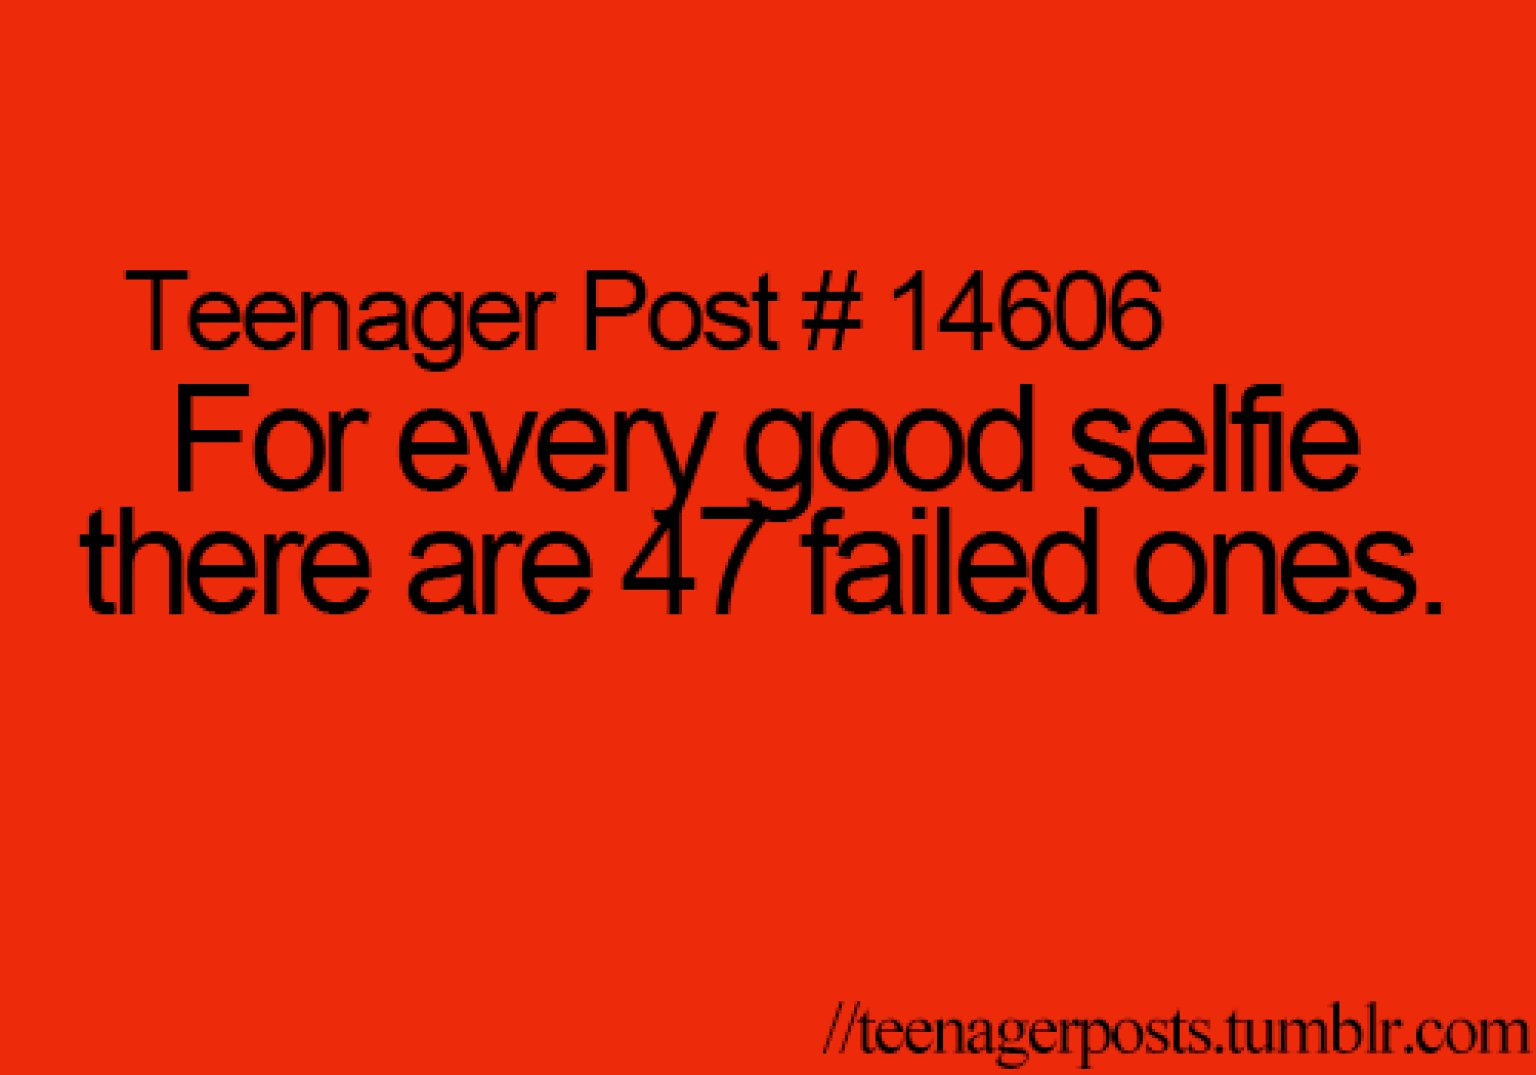 Quotes For Selfies Teenager Posts Of The Week The Truth About Selfies And Mario Cart